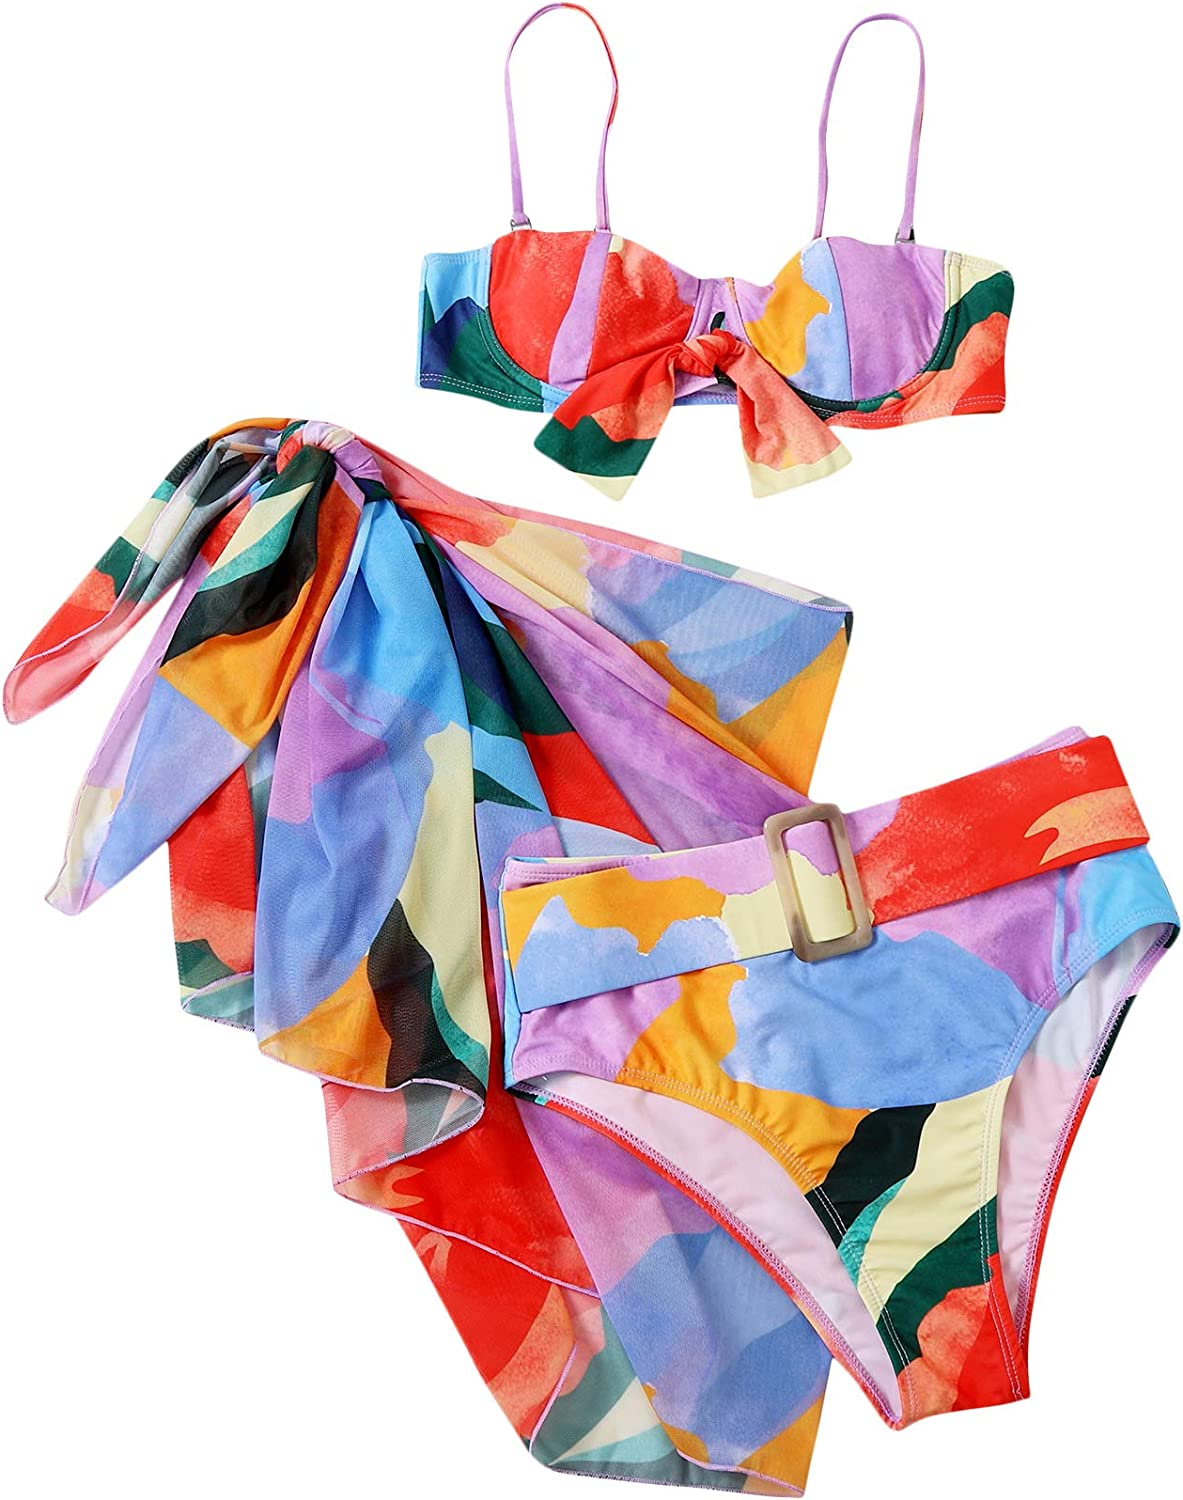 SOLY HUX Women's Color Block High Waisted Bikini Bathing Suits with Beach Skirt 3 Piece Swimsuits Multi S